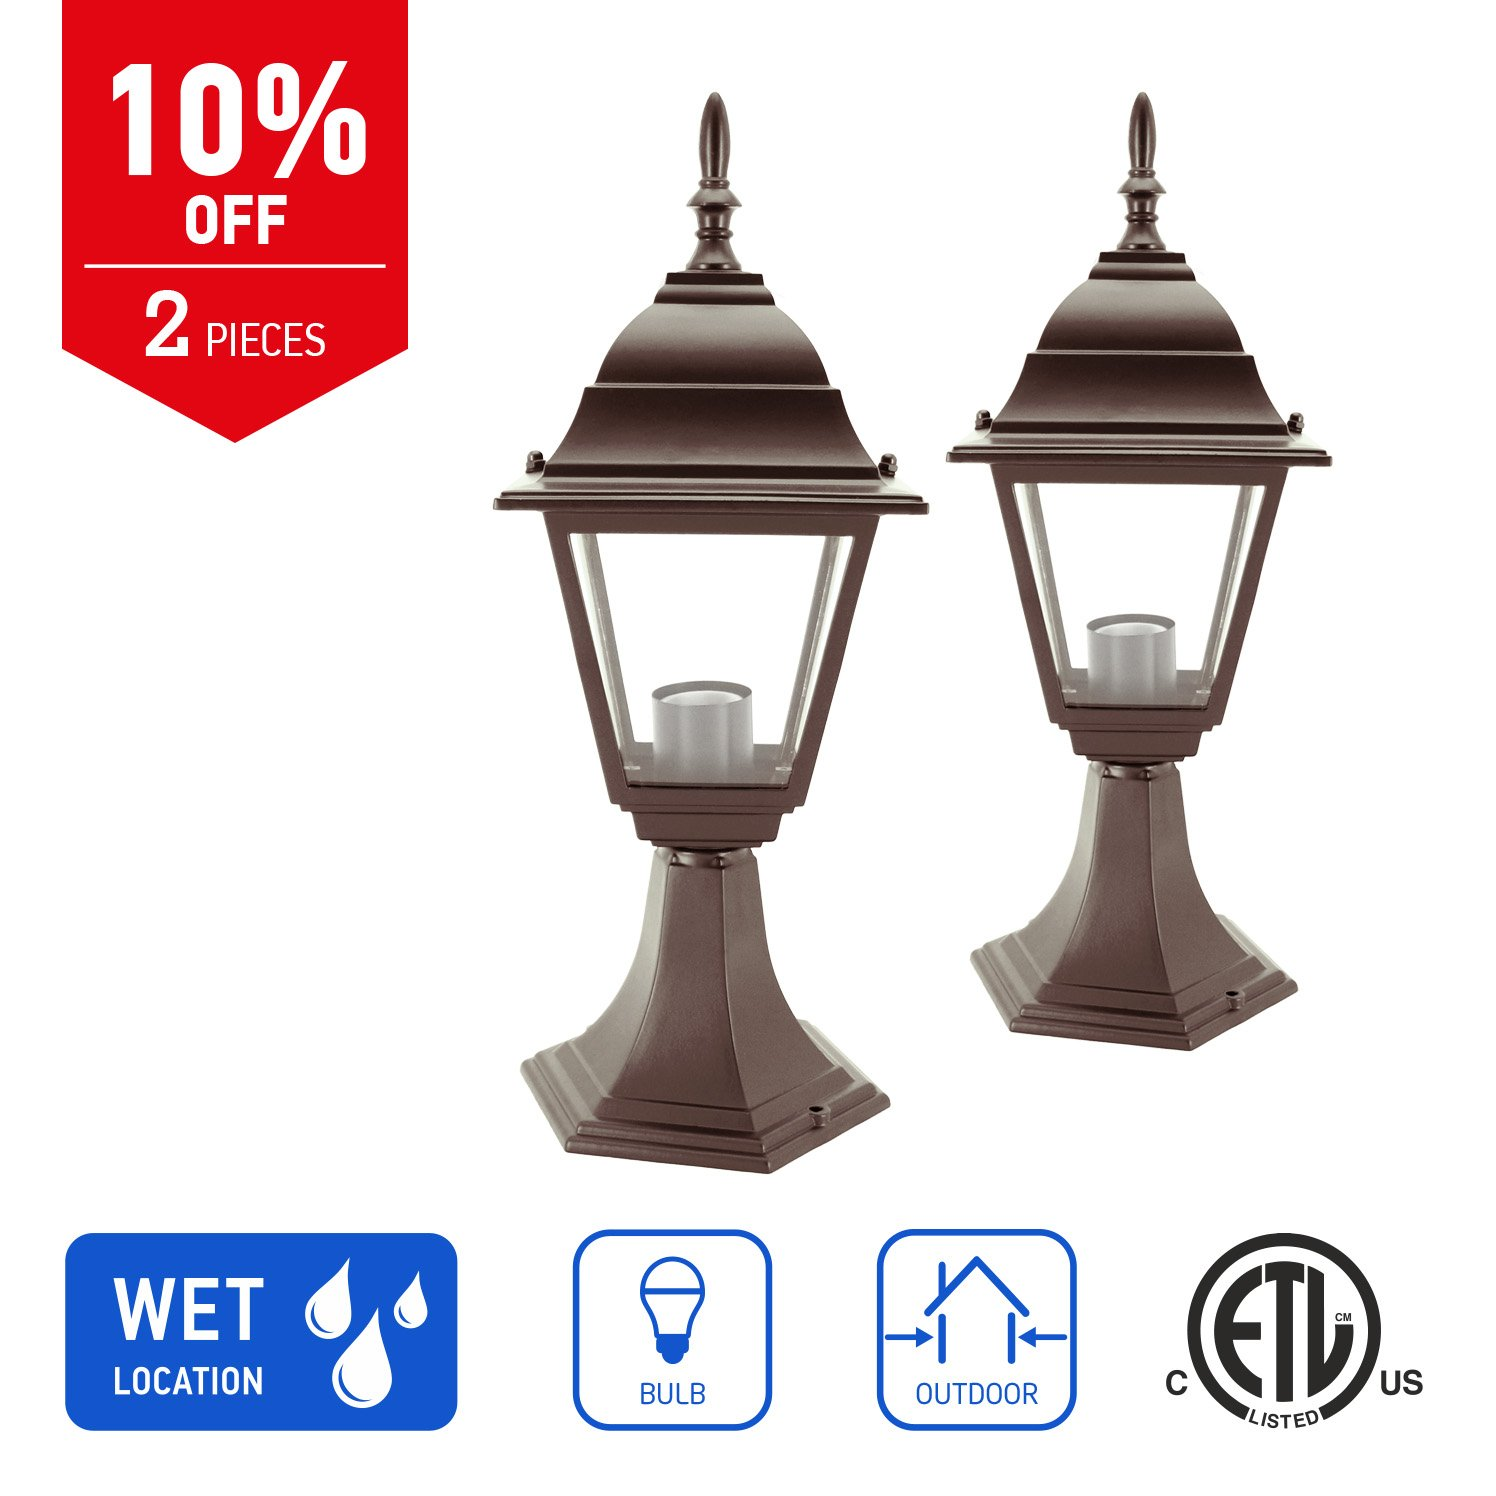 IN HOME 1-Light Outdoor Garden Post Lantern L02 Lighting Fixture, Traditional Post Lamp Patio with One E26 Base, Water-proof, Bronze Cast Aluminum Housing, Clear Glass Panels, (2 Pack) ETL Listed